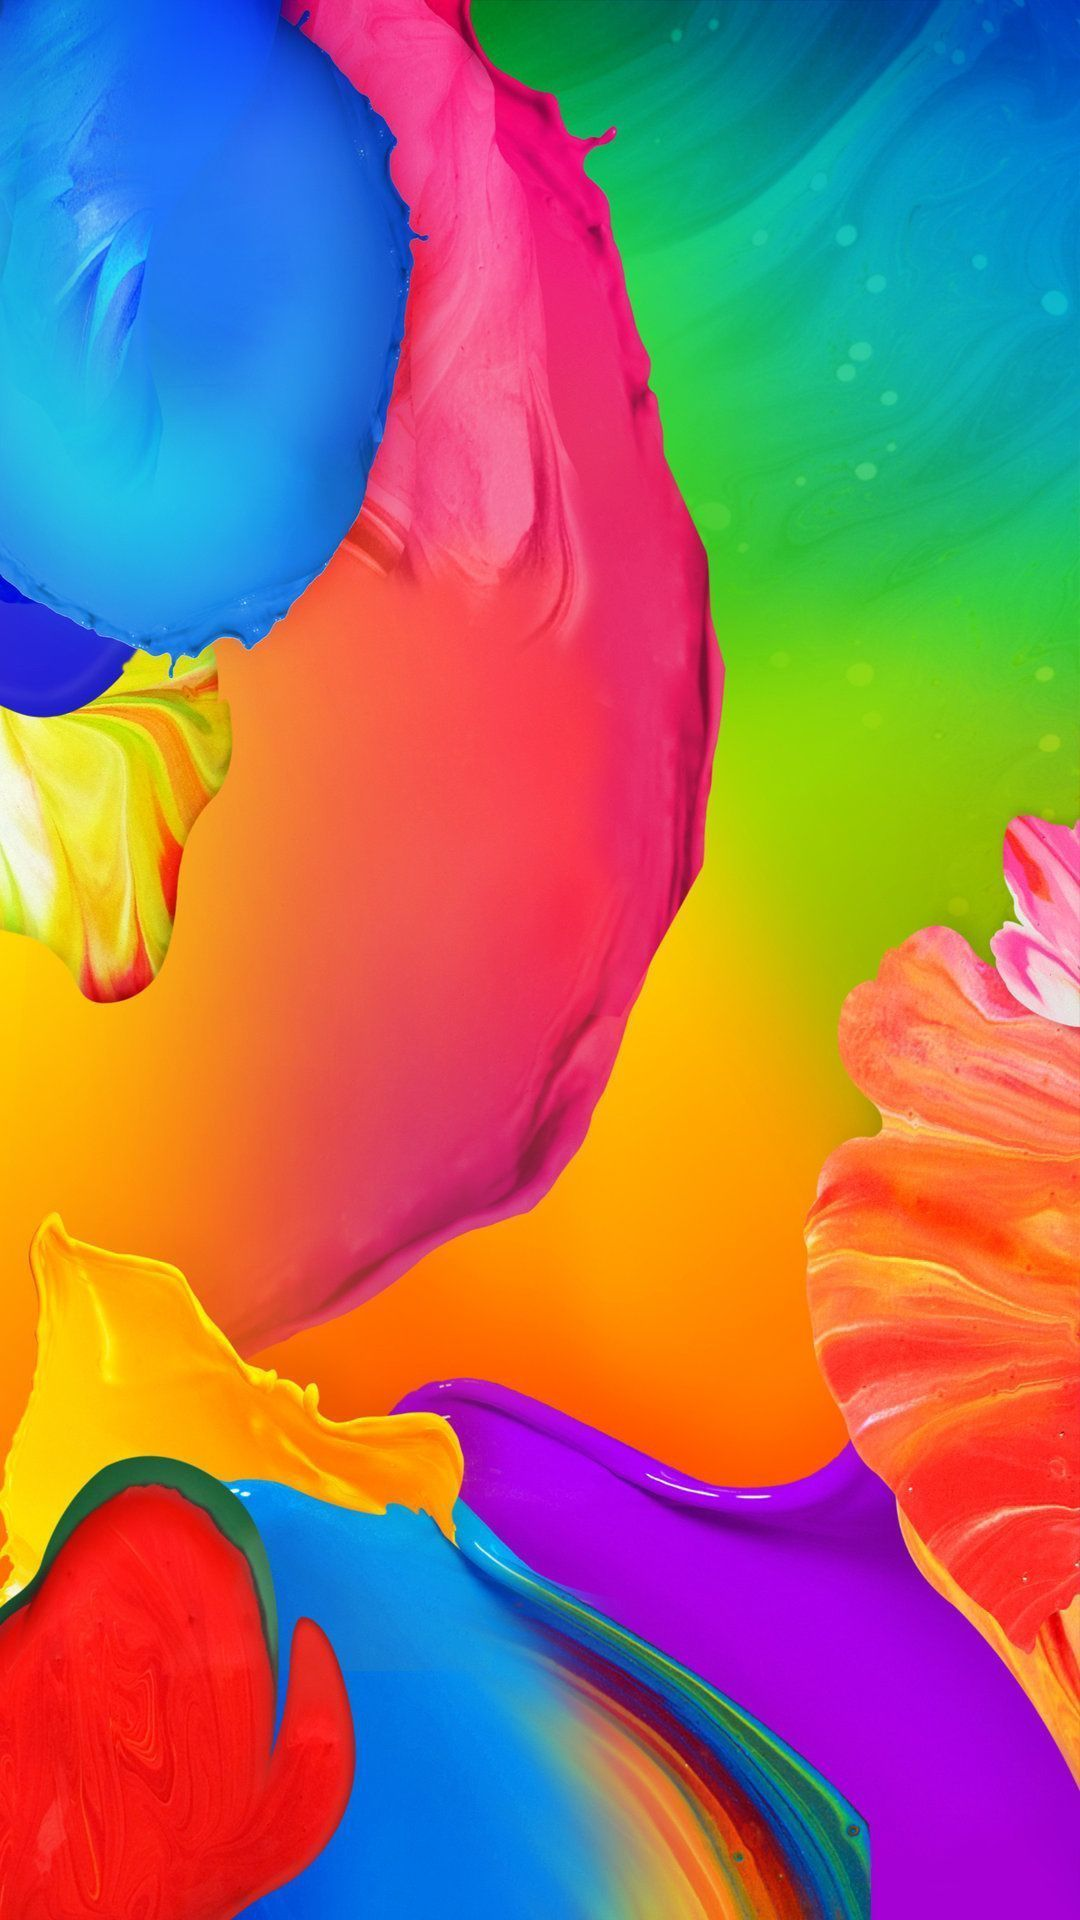 Awesome 8 Colorful Wallpaper Hd Resolution For Your Android Or Iphone Wallpapers Android Iphone Wal Painting Wallpaper Colorful Wallpaper Abstract Wallpaper